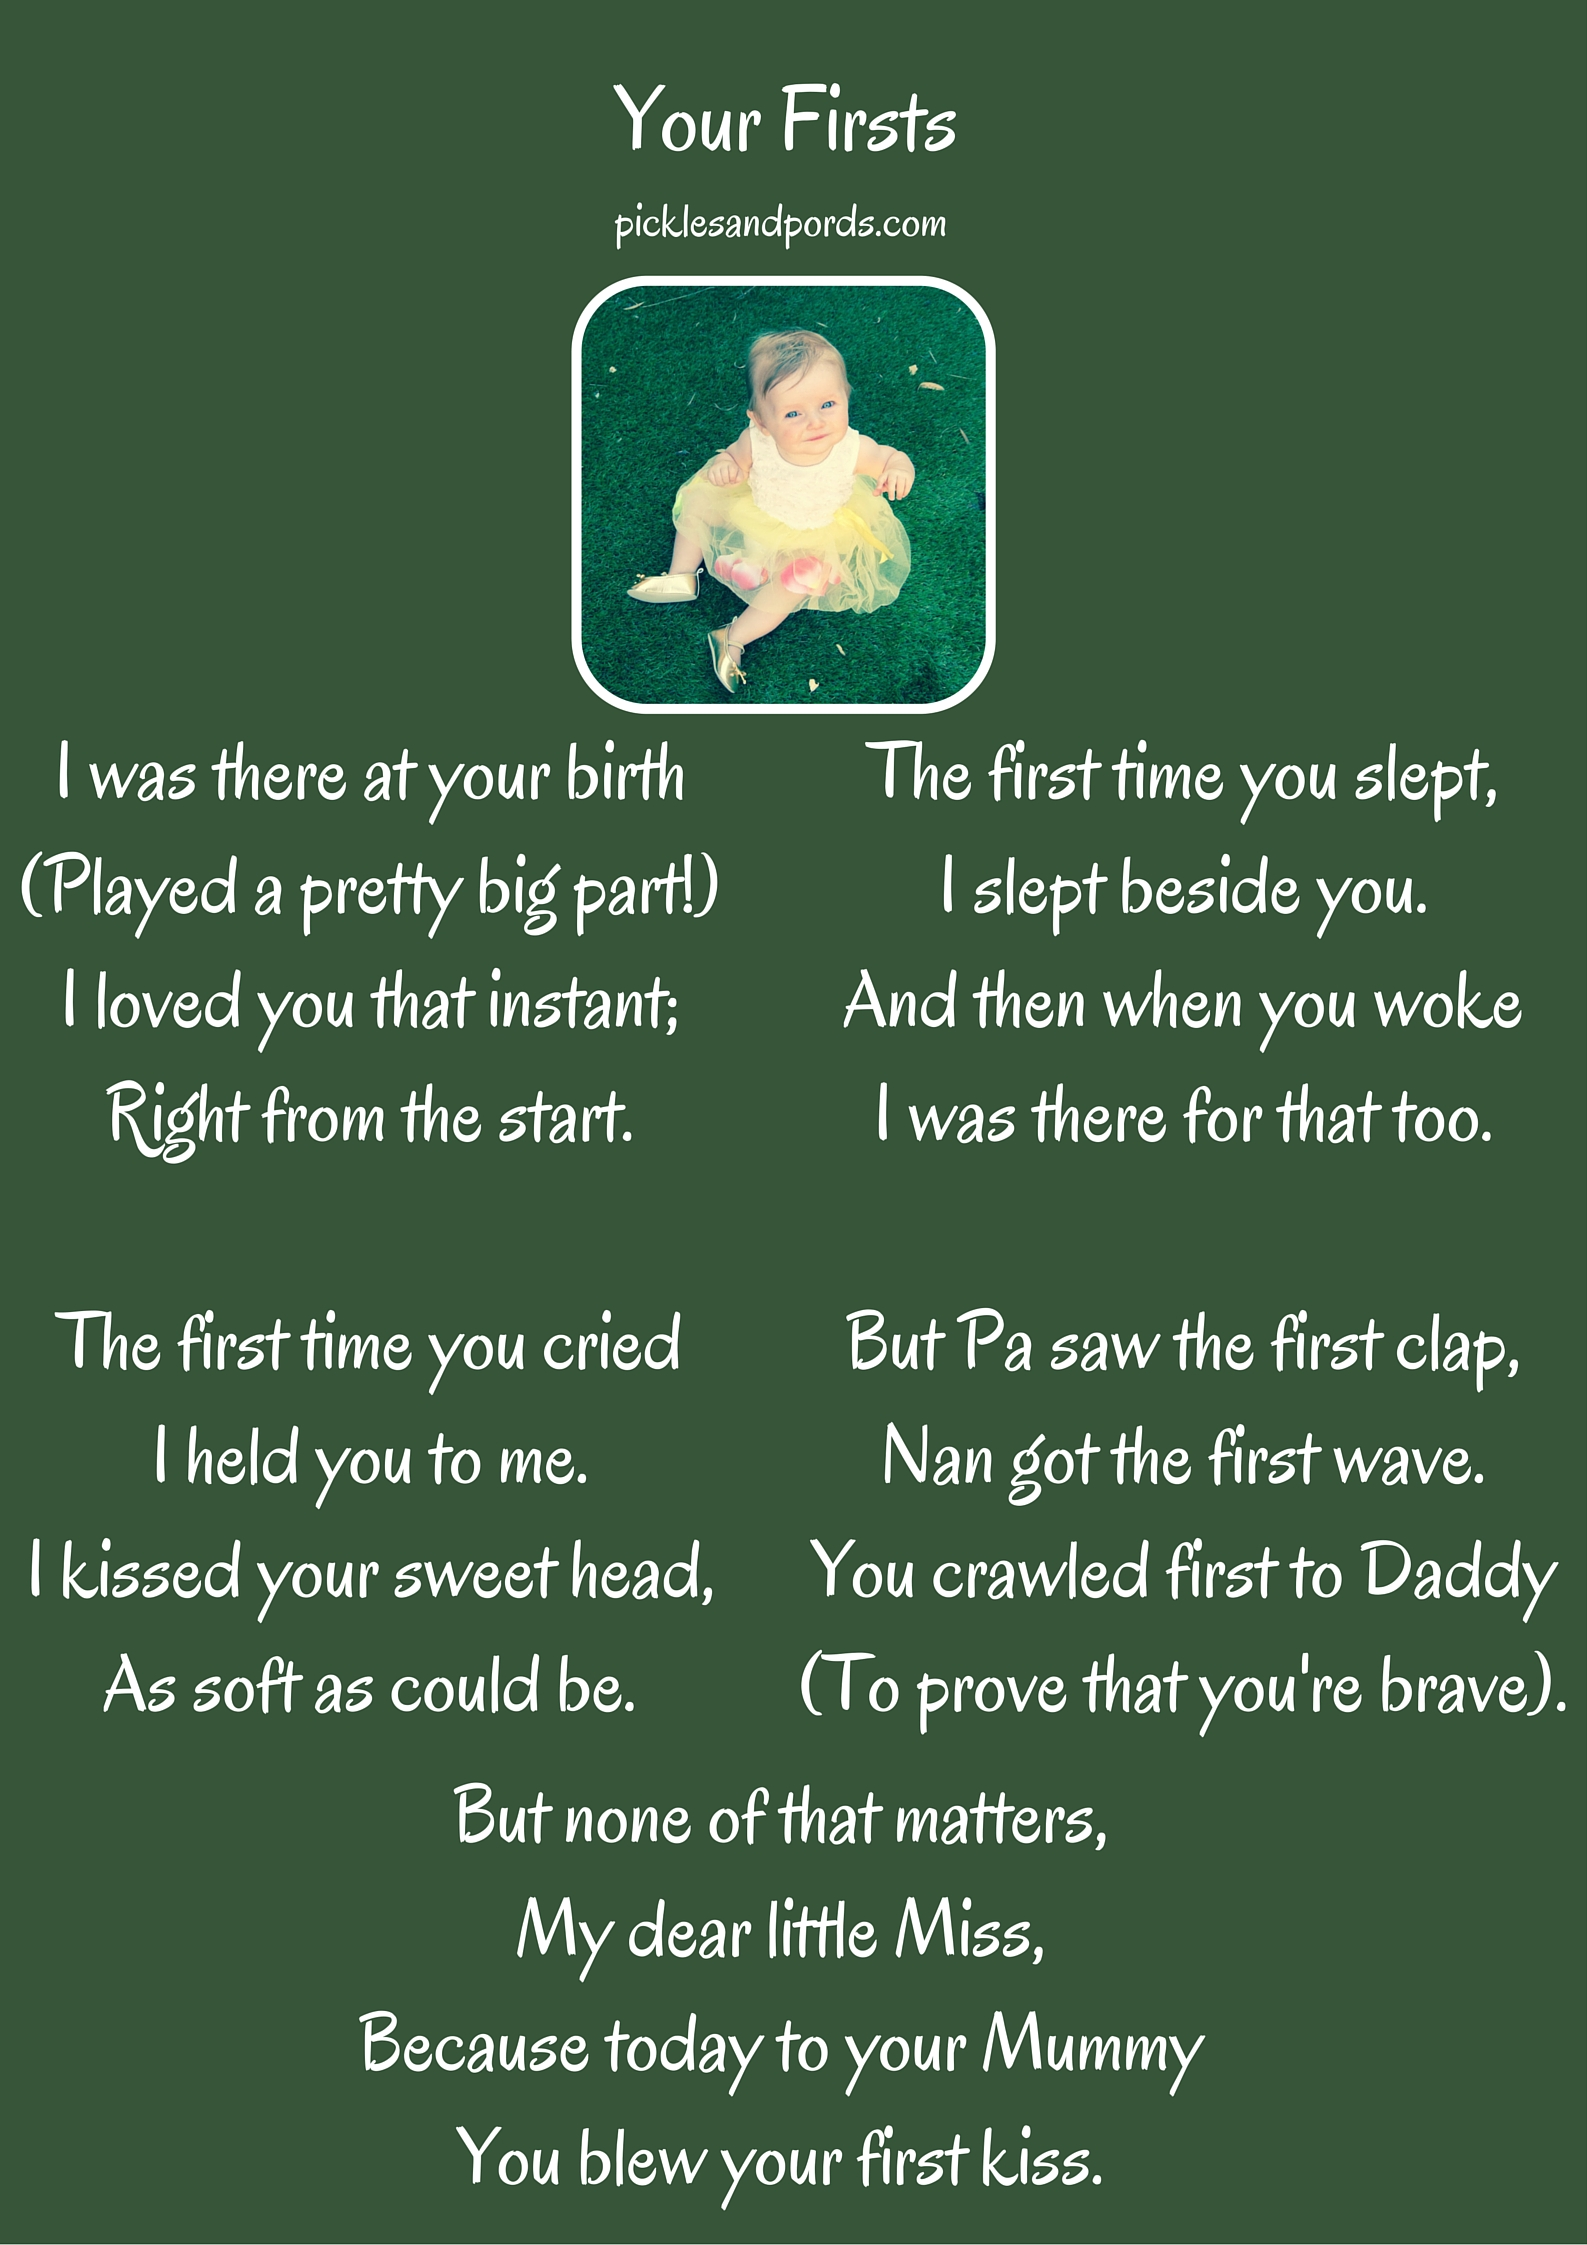 Your Firsts